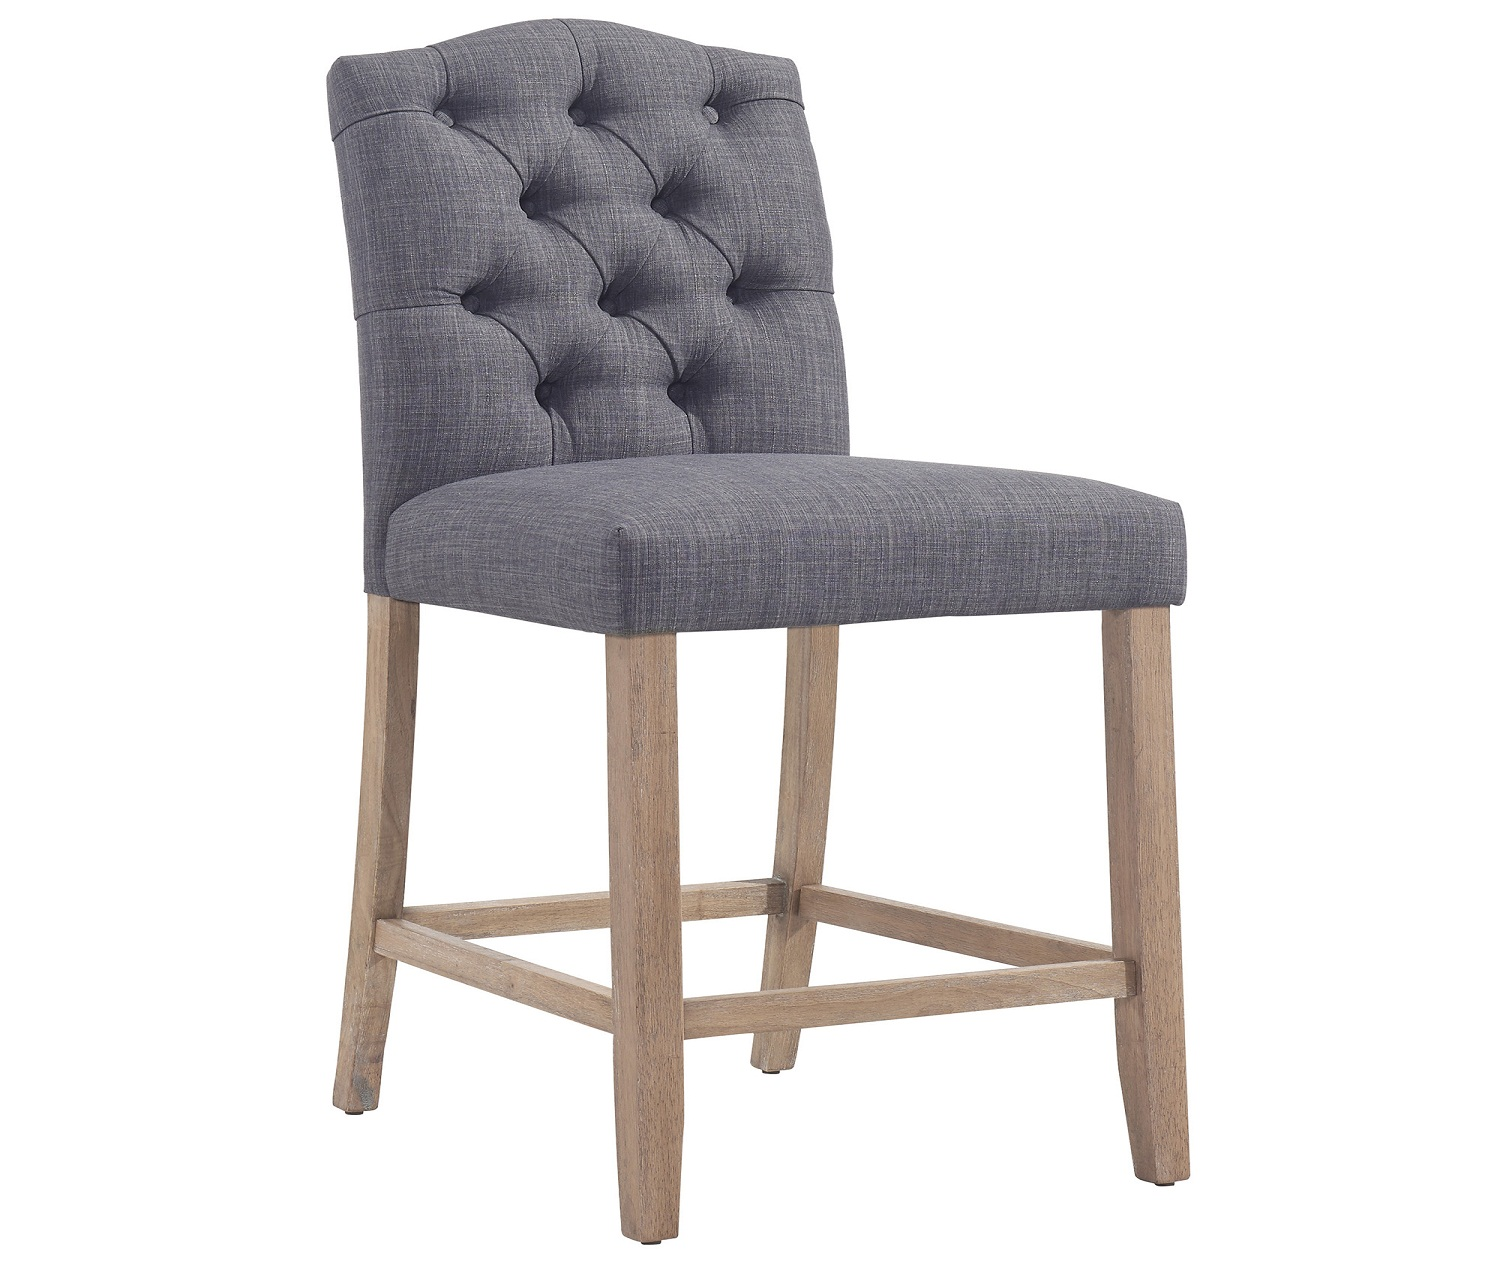 LUCIAN-26. (Set of Two), 841173027575, Bar Stools, LUCIAN-26. (Set of Two) from Dropship by Midha Furniture serving Brampton, Mississauga, Etobicoke, Toronto, Scraborough, Caledon, Cambridge, Oakville, Markham, Ajax, Pickering, Oshawa, Richmondhill, Kitchener, Hamilton, Cambridge, Waterloo and GTA area